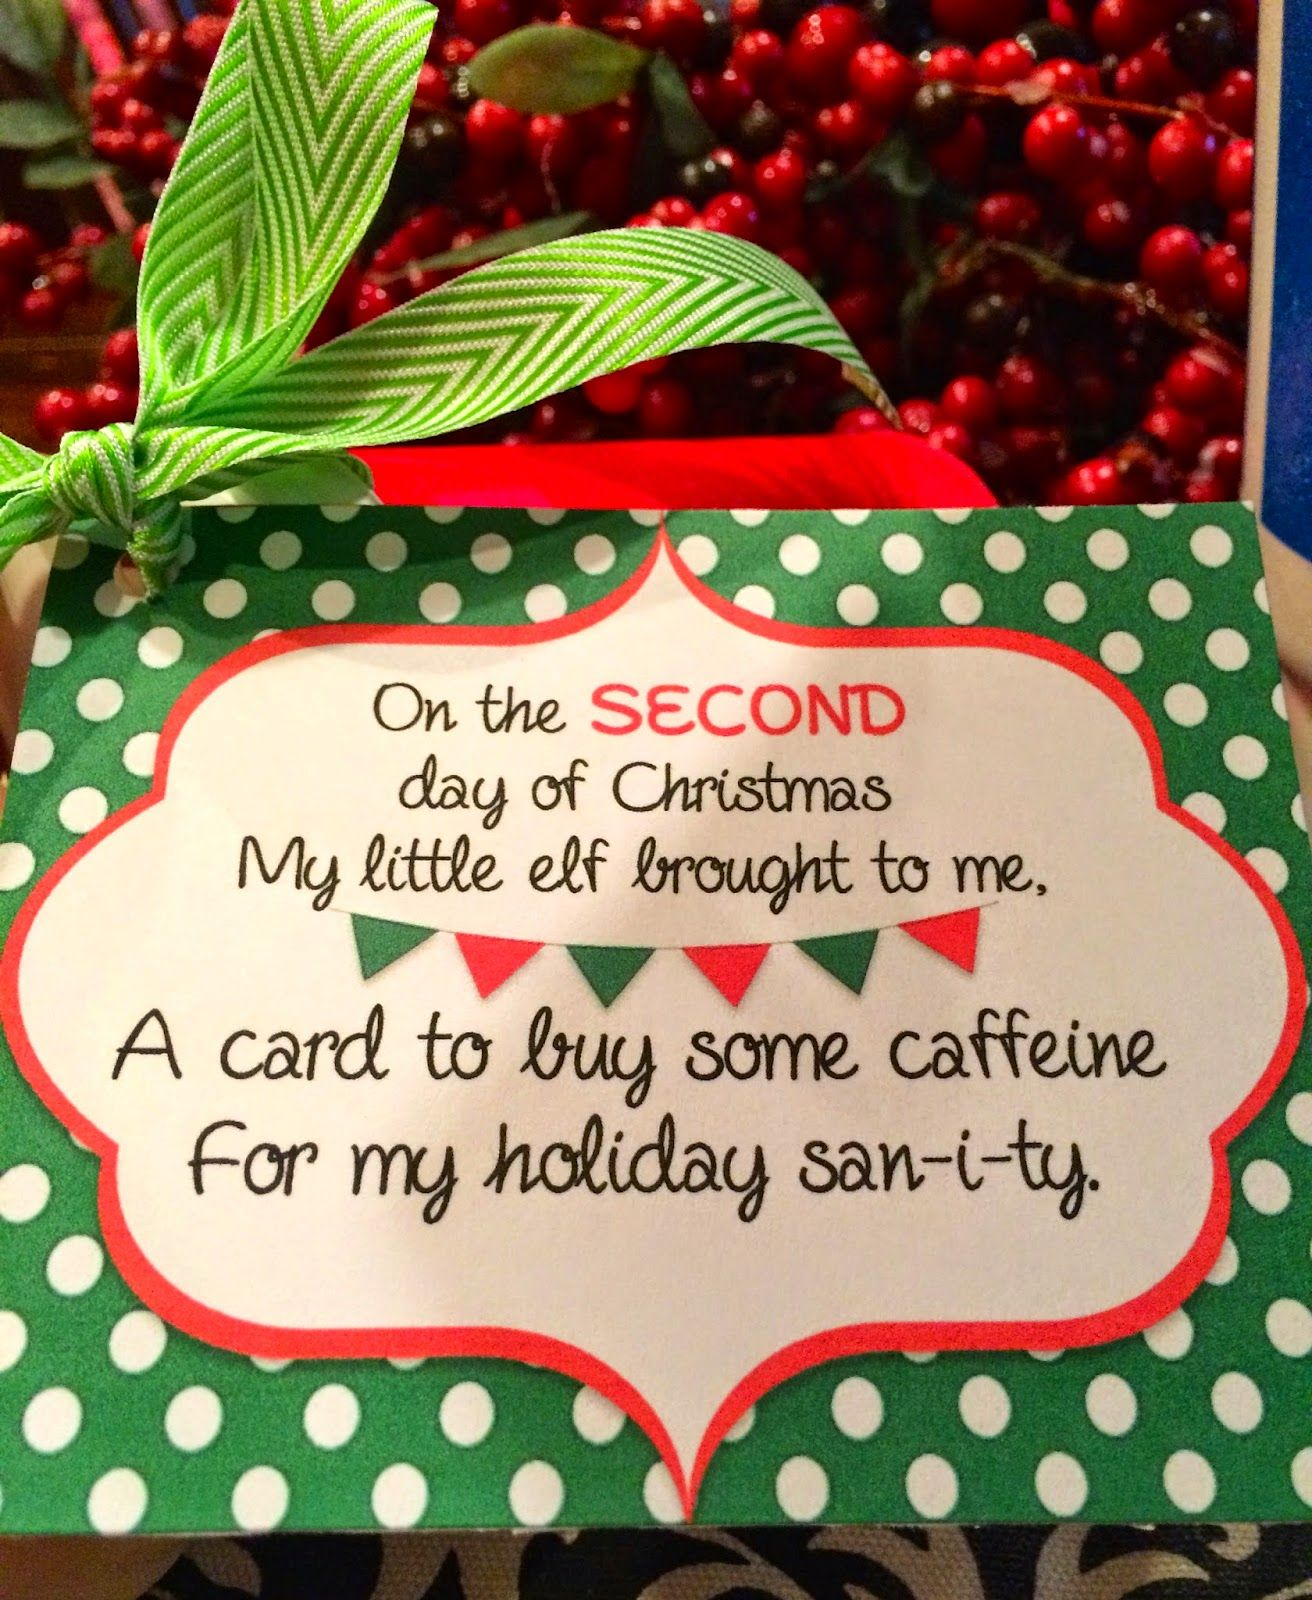 12 Days Of Christmas For Teachers Days 1 4 From Marci Coombs Blog Teacher Christmas Teacher Christmas Gifts Christmas Gifts For Friends